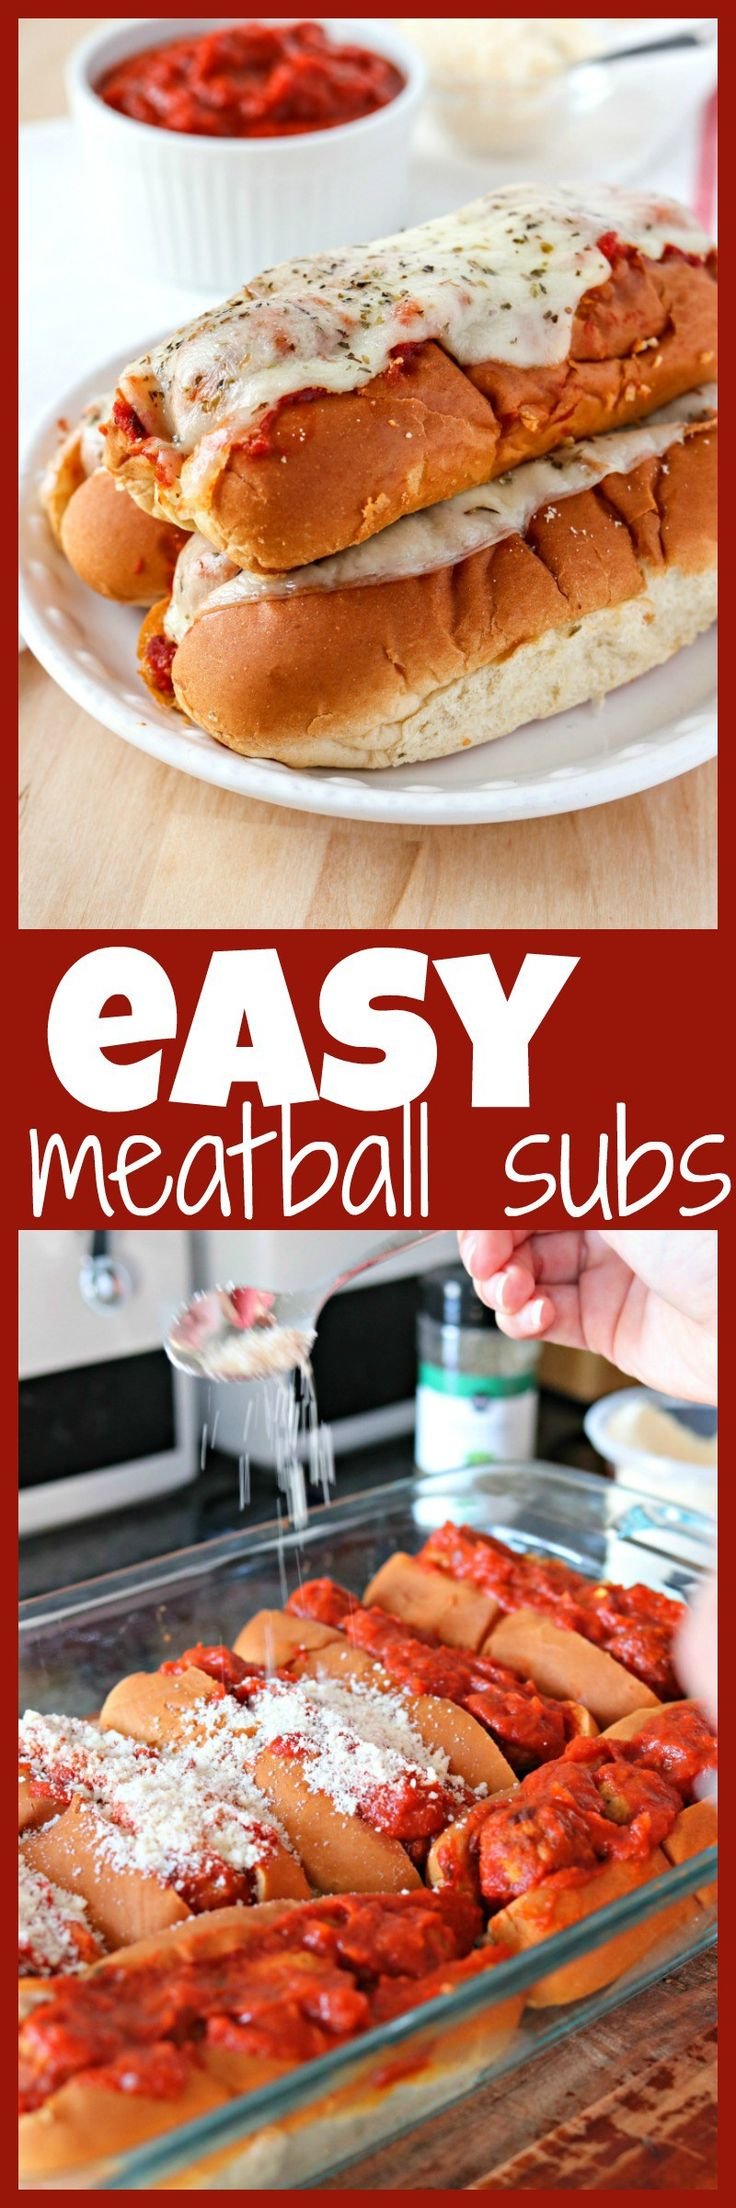 Made with hot dog buns, frozen meatballs, marinara, and provolone, these meatball subs are so simple to make and perfect for feeding a crowd. Don't have a crowd to feed? You can easily adjust this recipe for a smaller group!